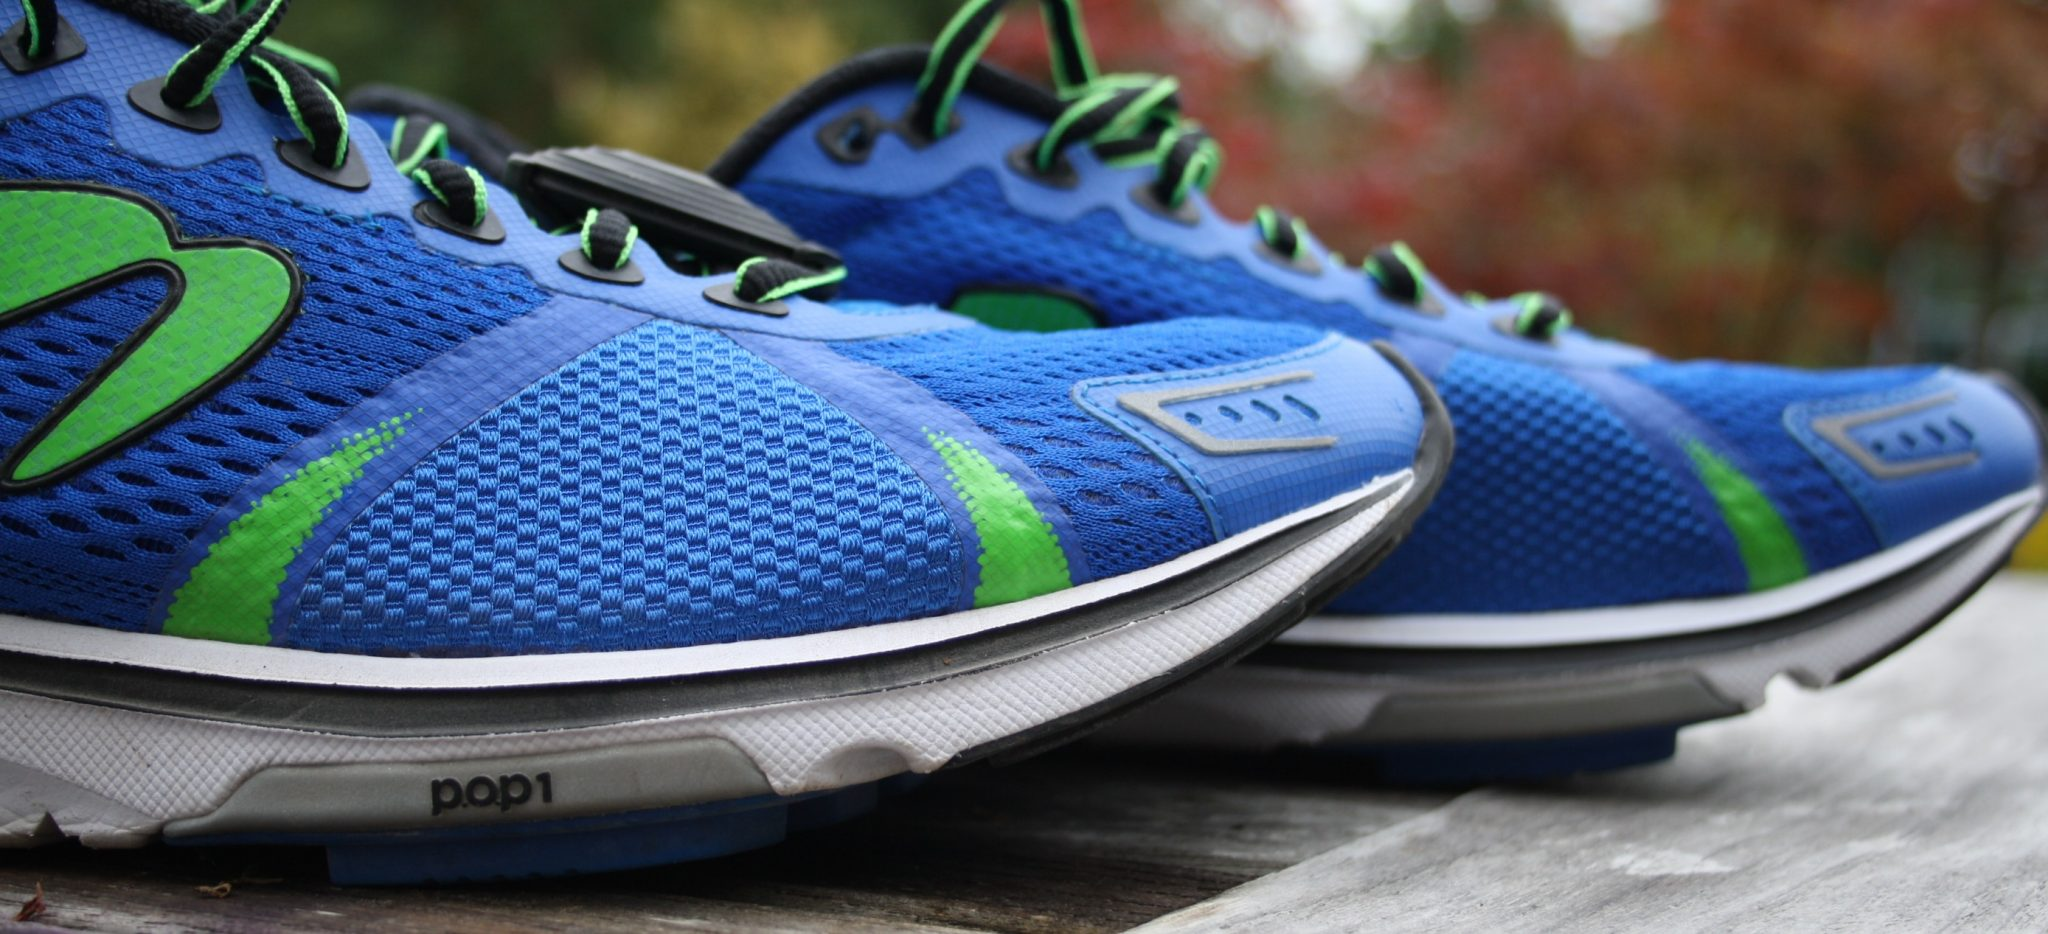 Newton Gravity Review v6 Running shoe With STRYD